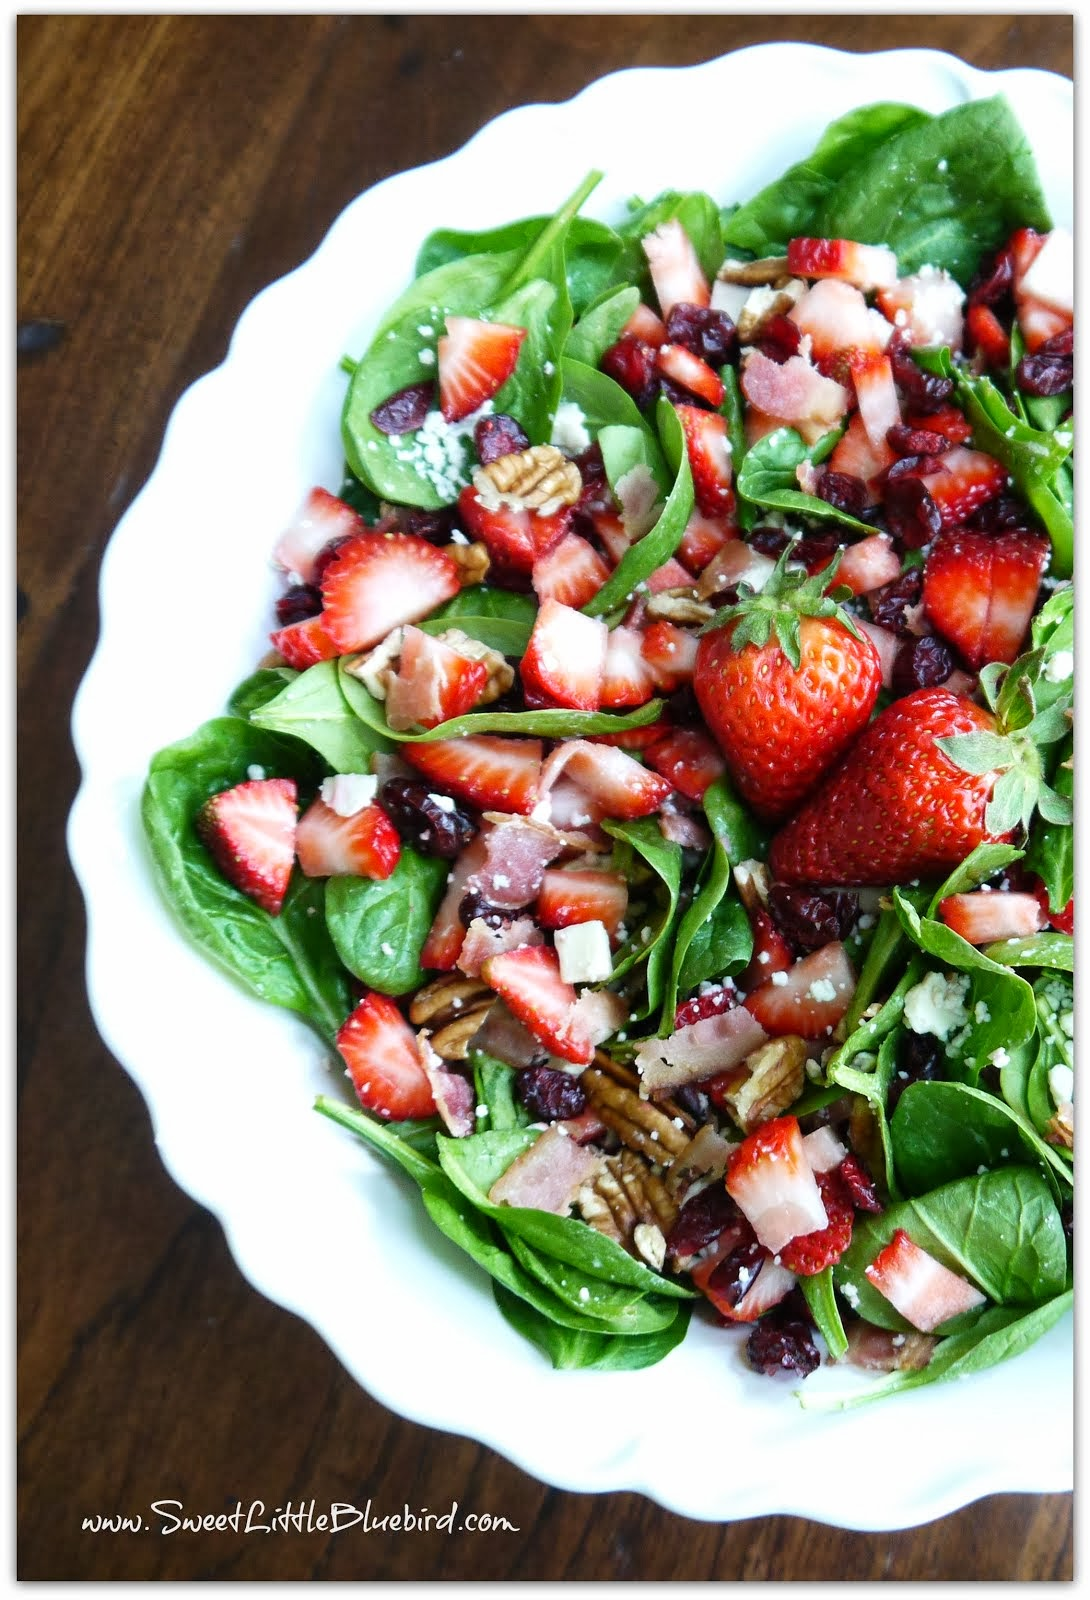 Summer Spinach & Strawberry Salad